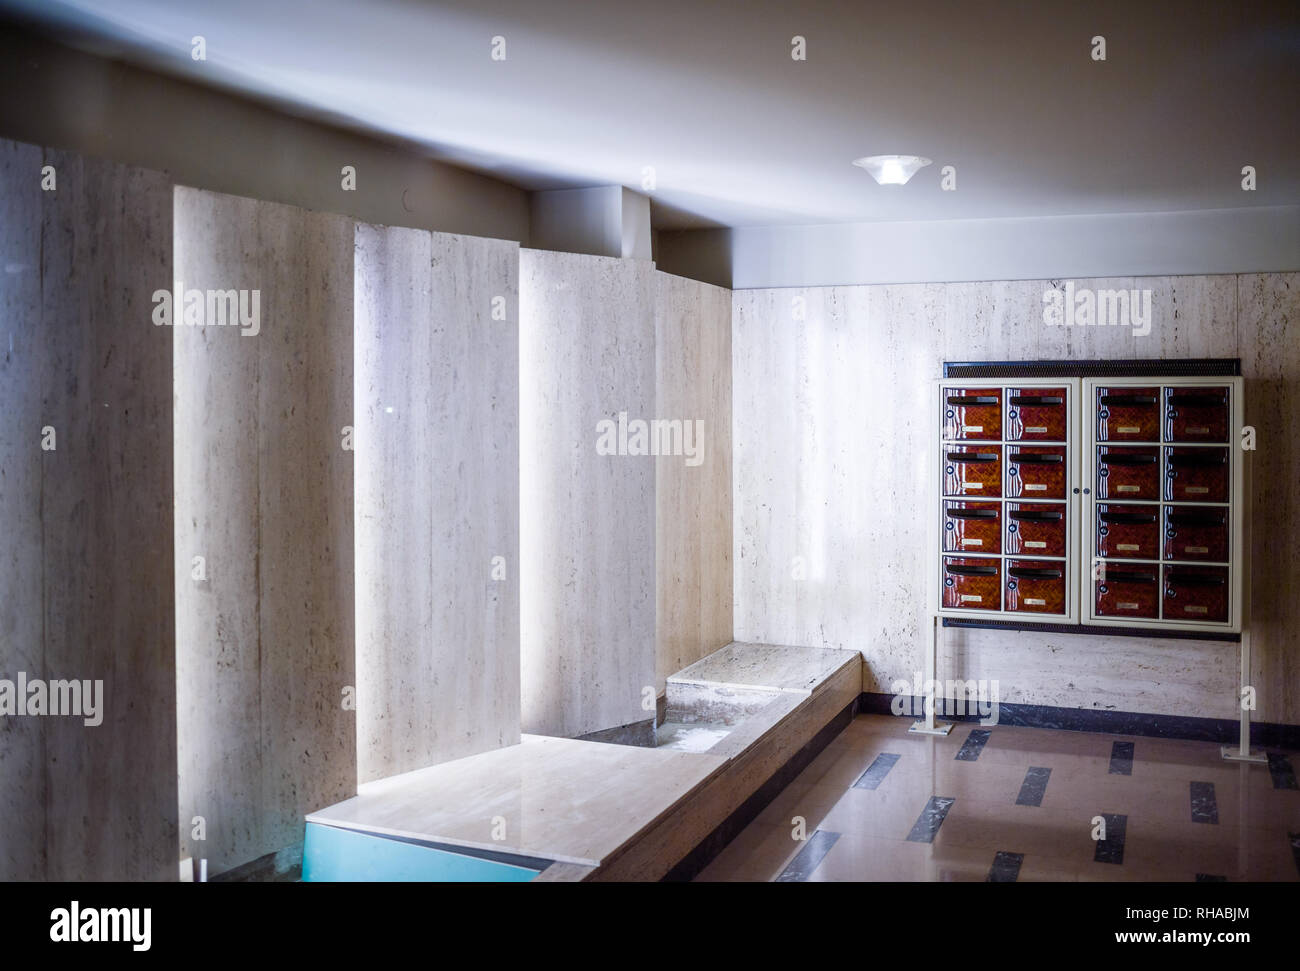 Entrance to modern vintage apartment building foyer lobby entrance with multiple postal boxes architectural illumination - Stock Image